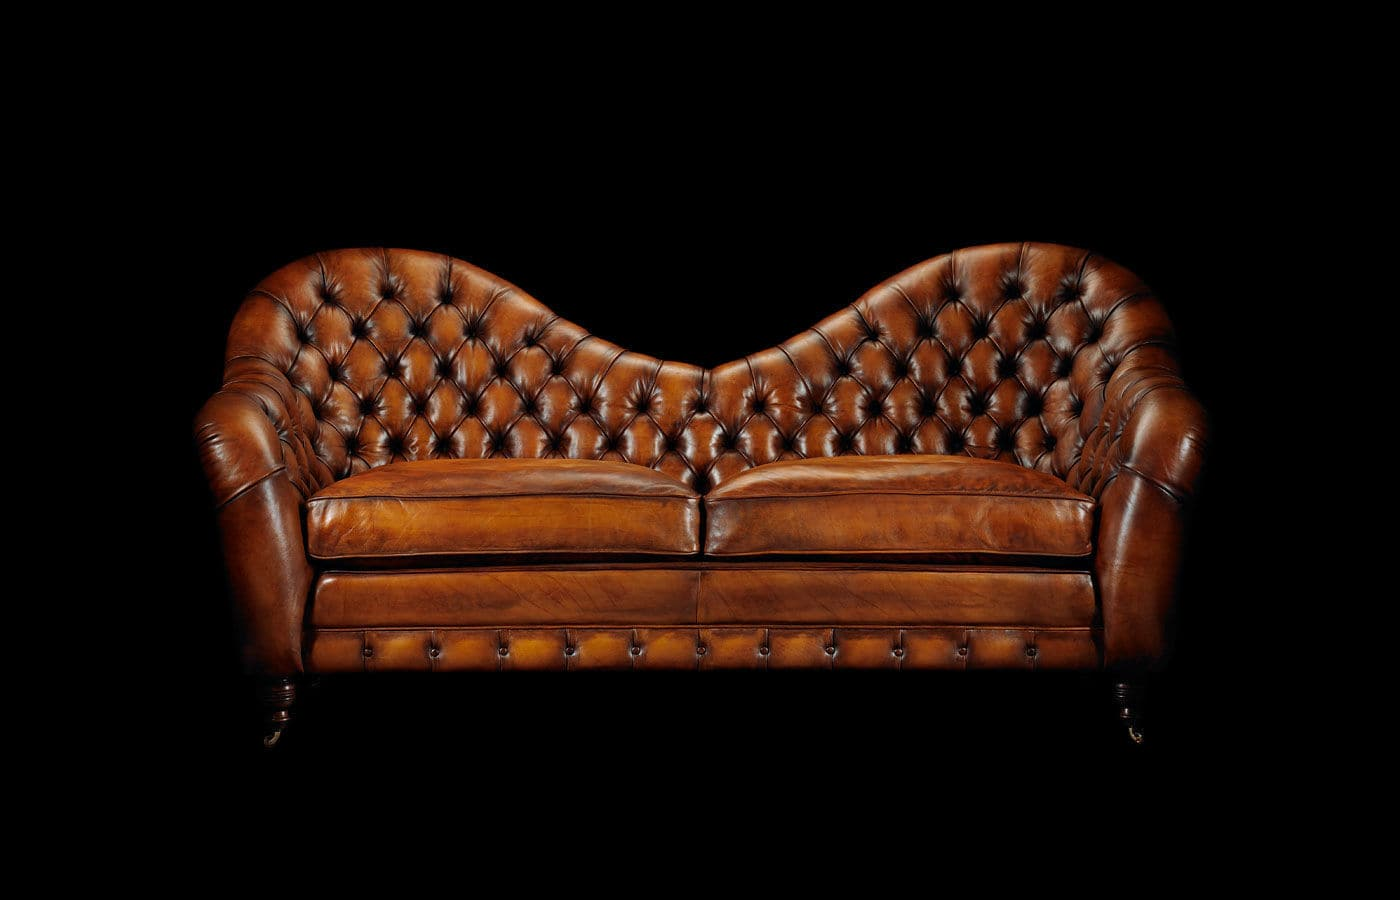 Canapé Chesterfield 2 Places Canapé Chesterfield En Cuir 2 Places à Roulettes Francis